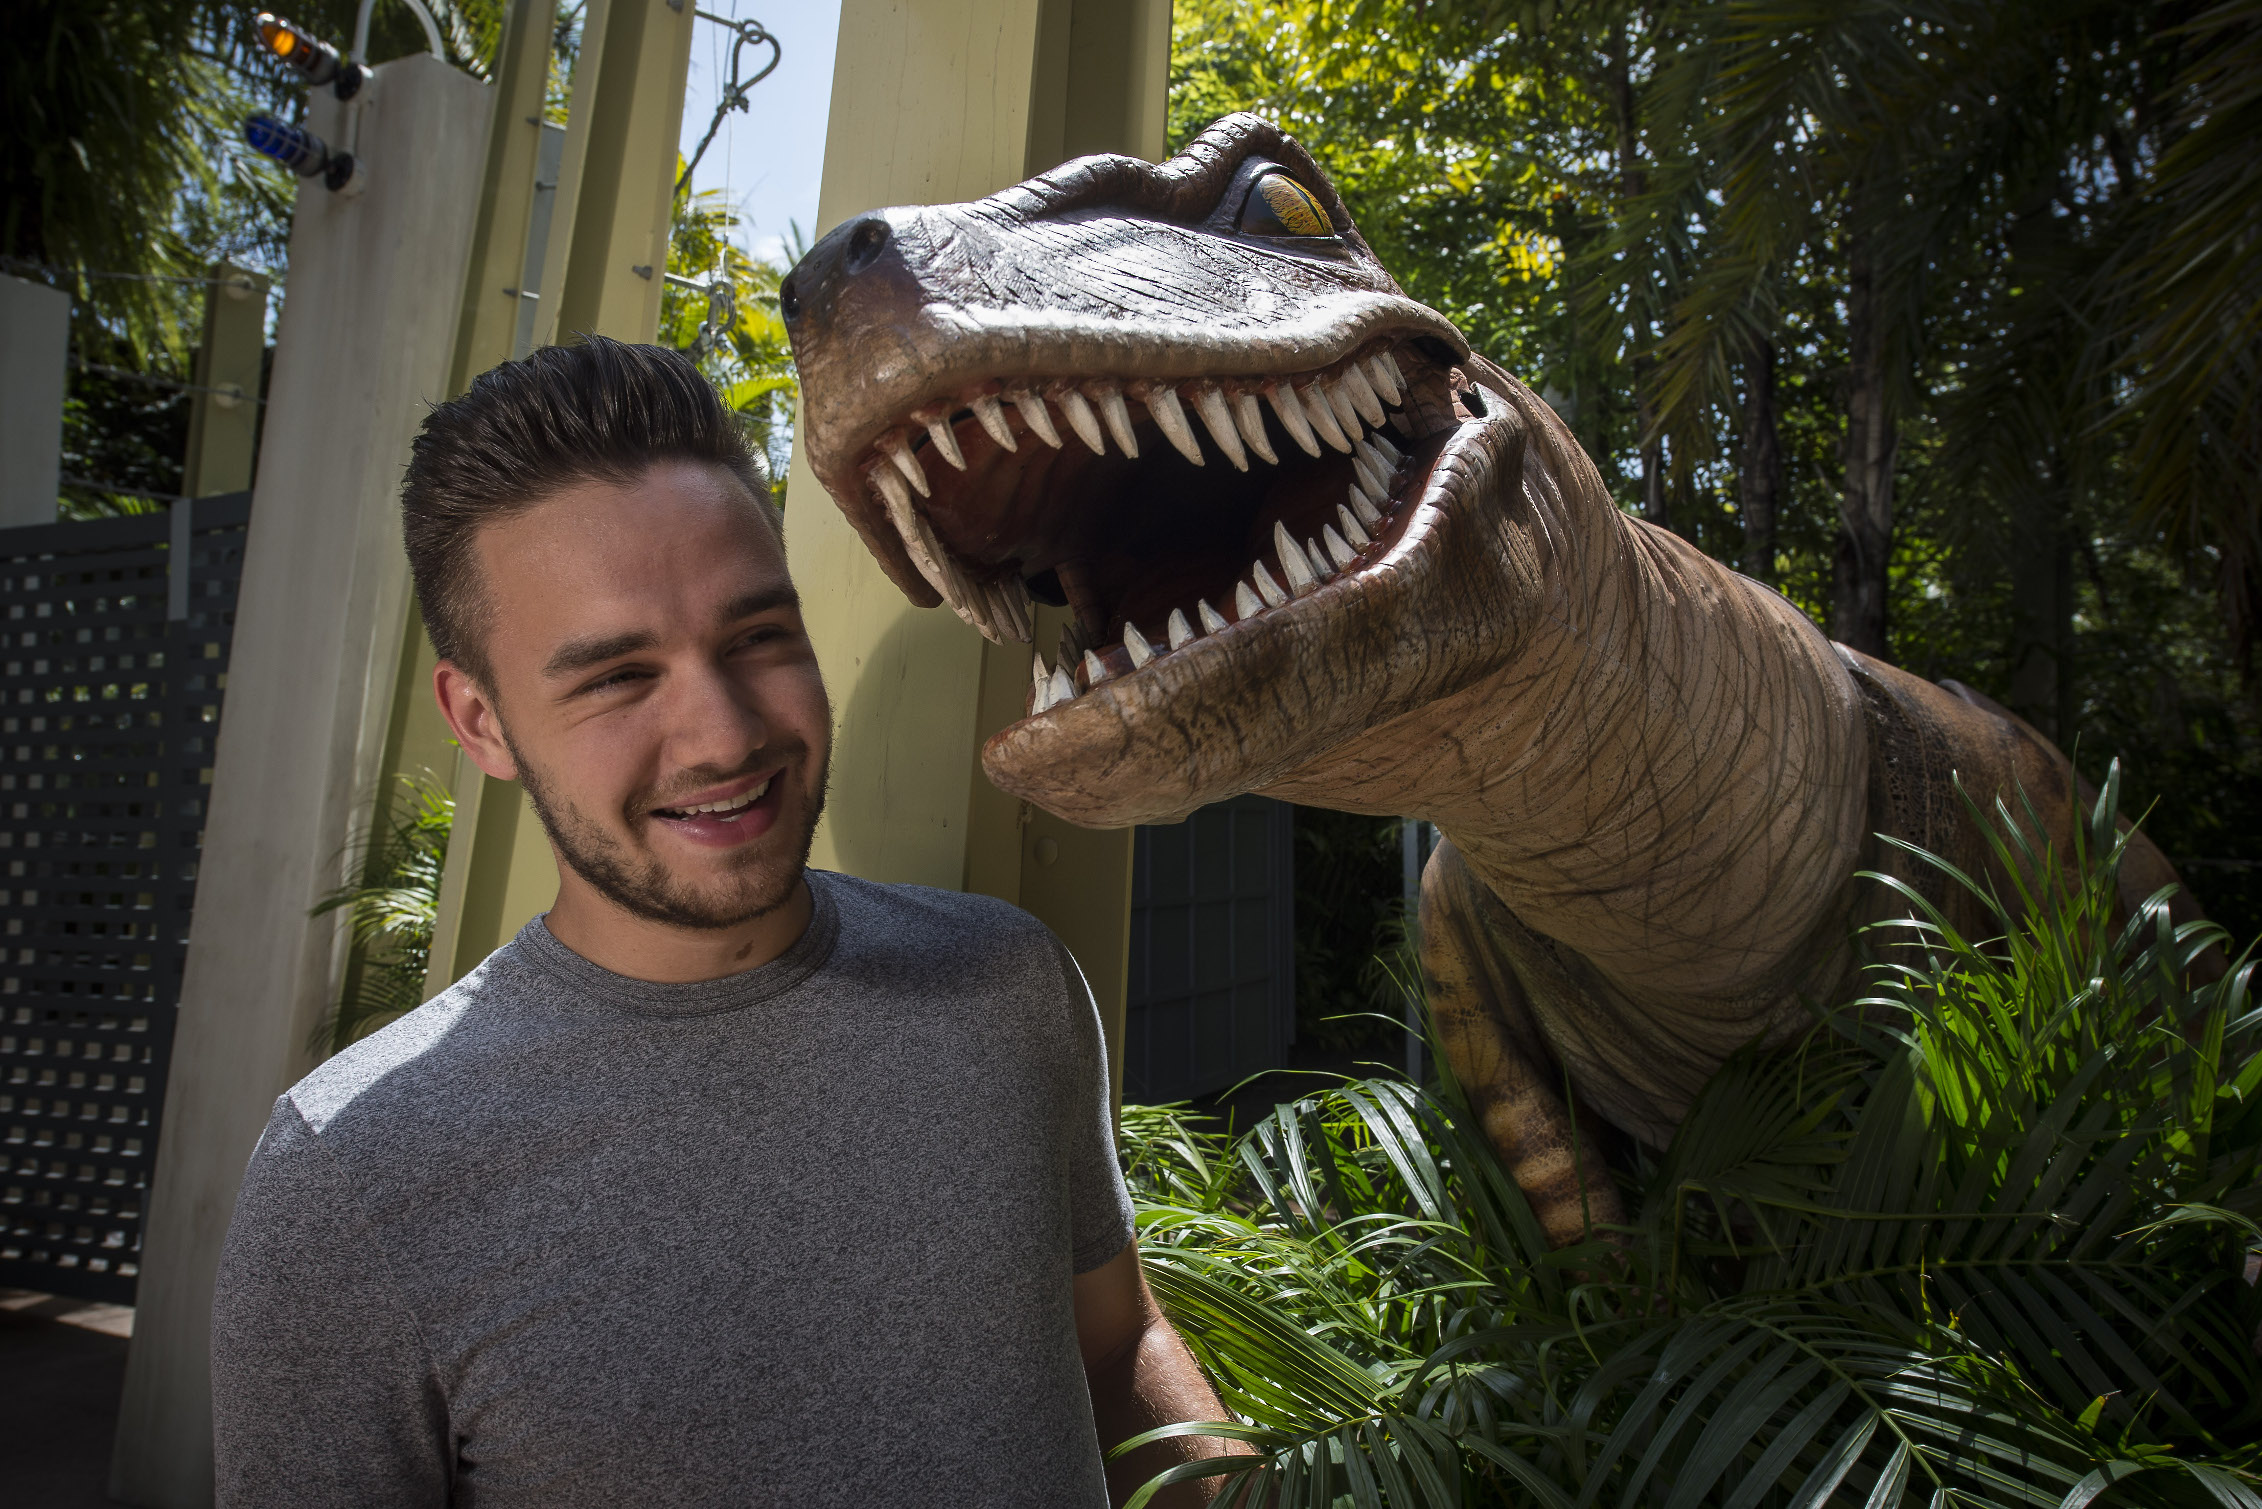 Publicity, Liam Payne, One Direction, Raptor